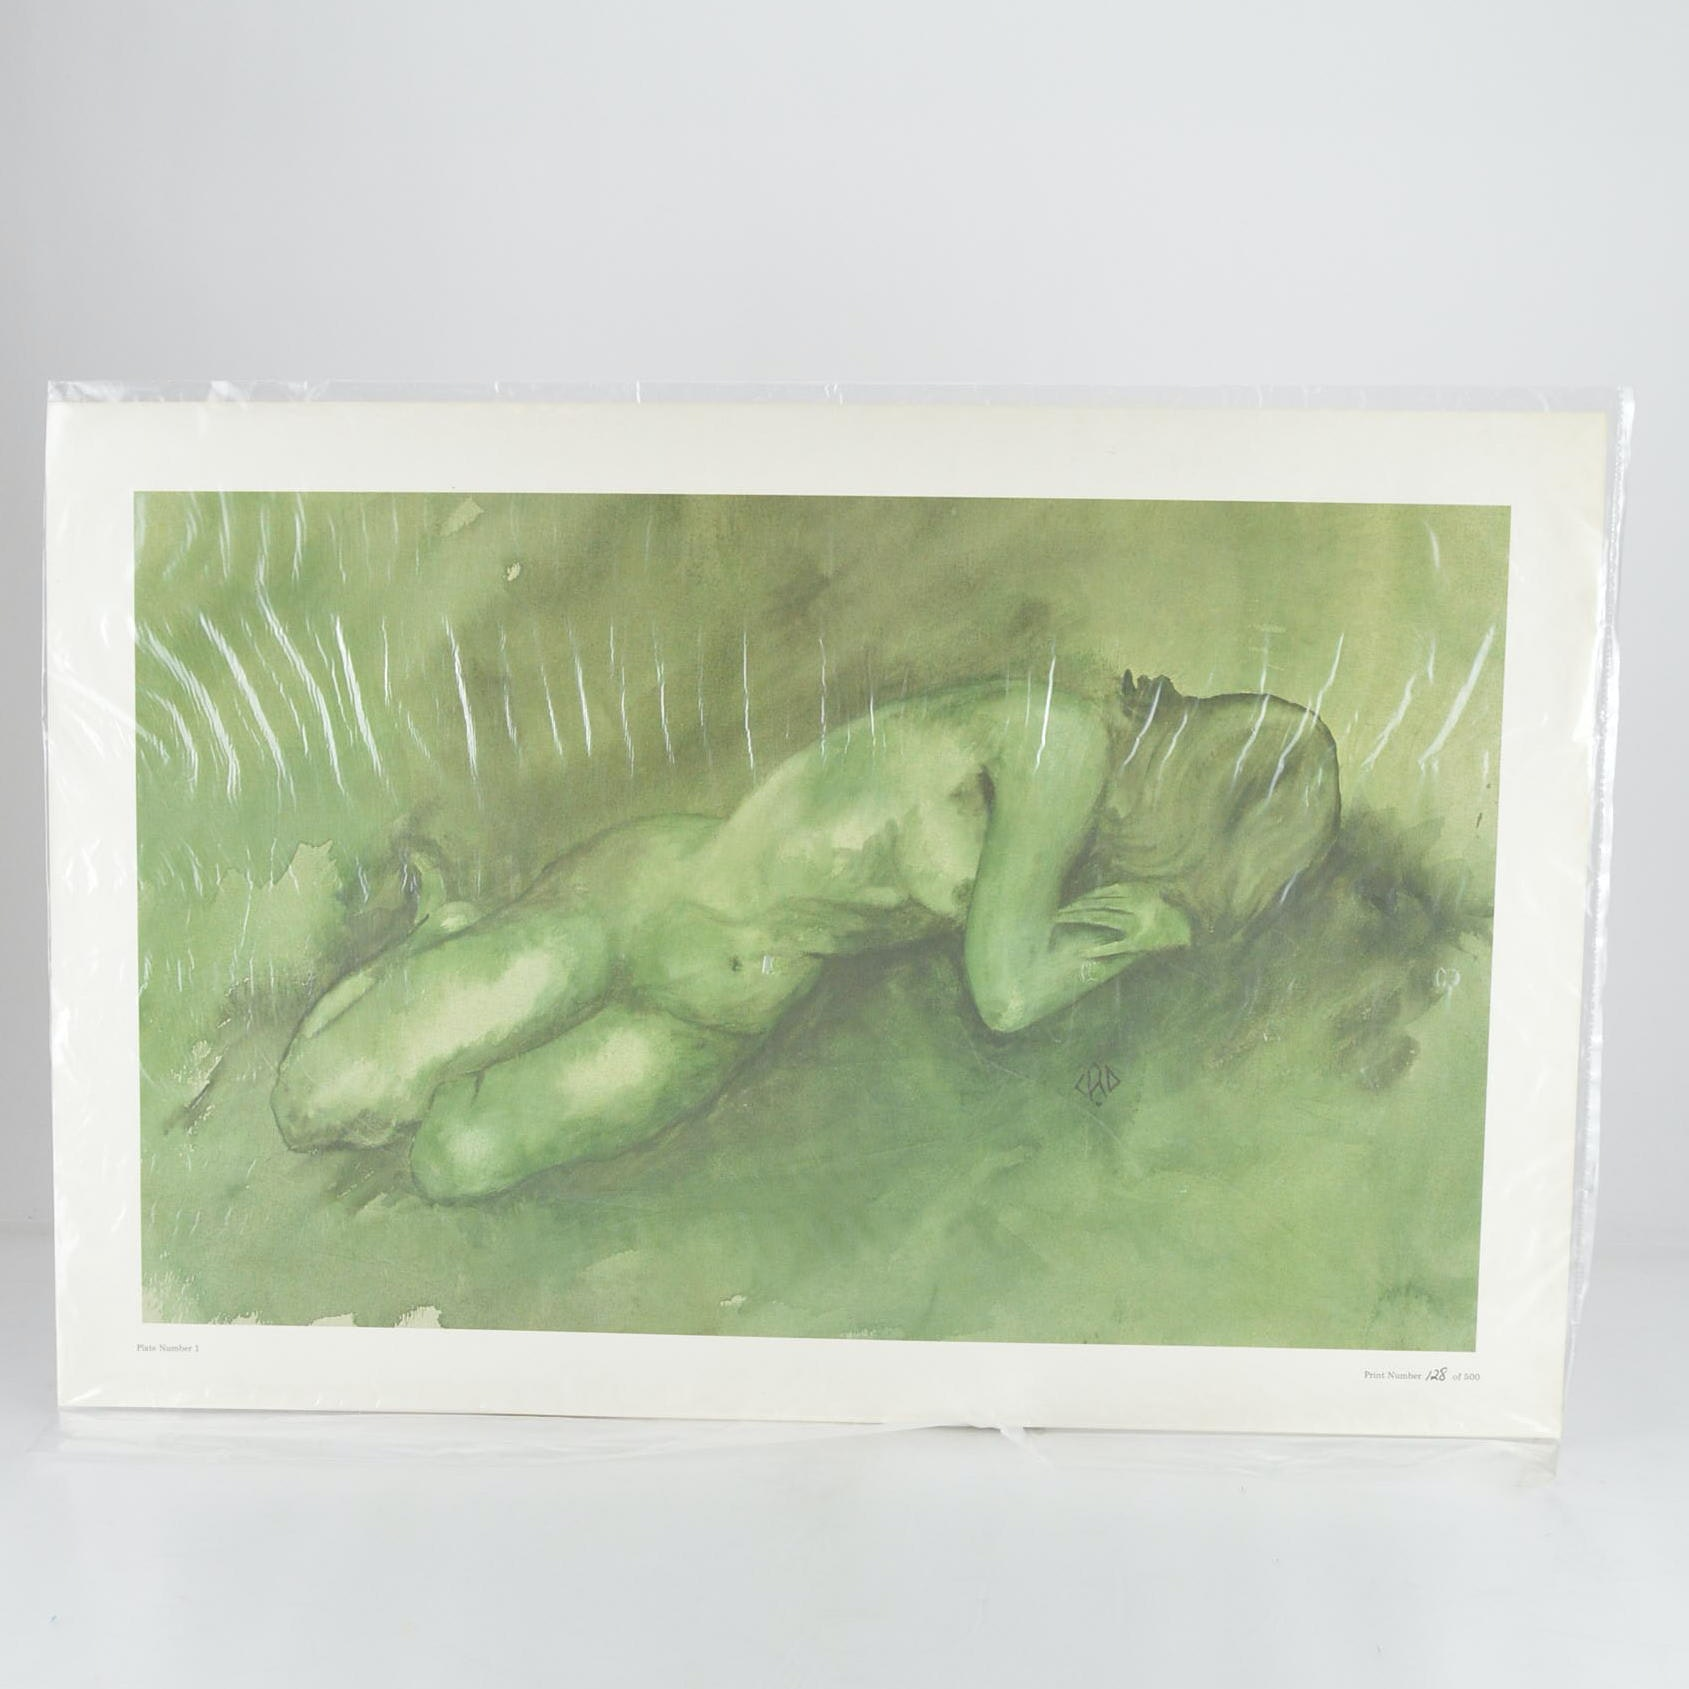 Limited Edition Offset Lithograph Print of Nude